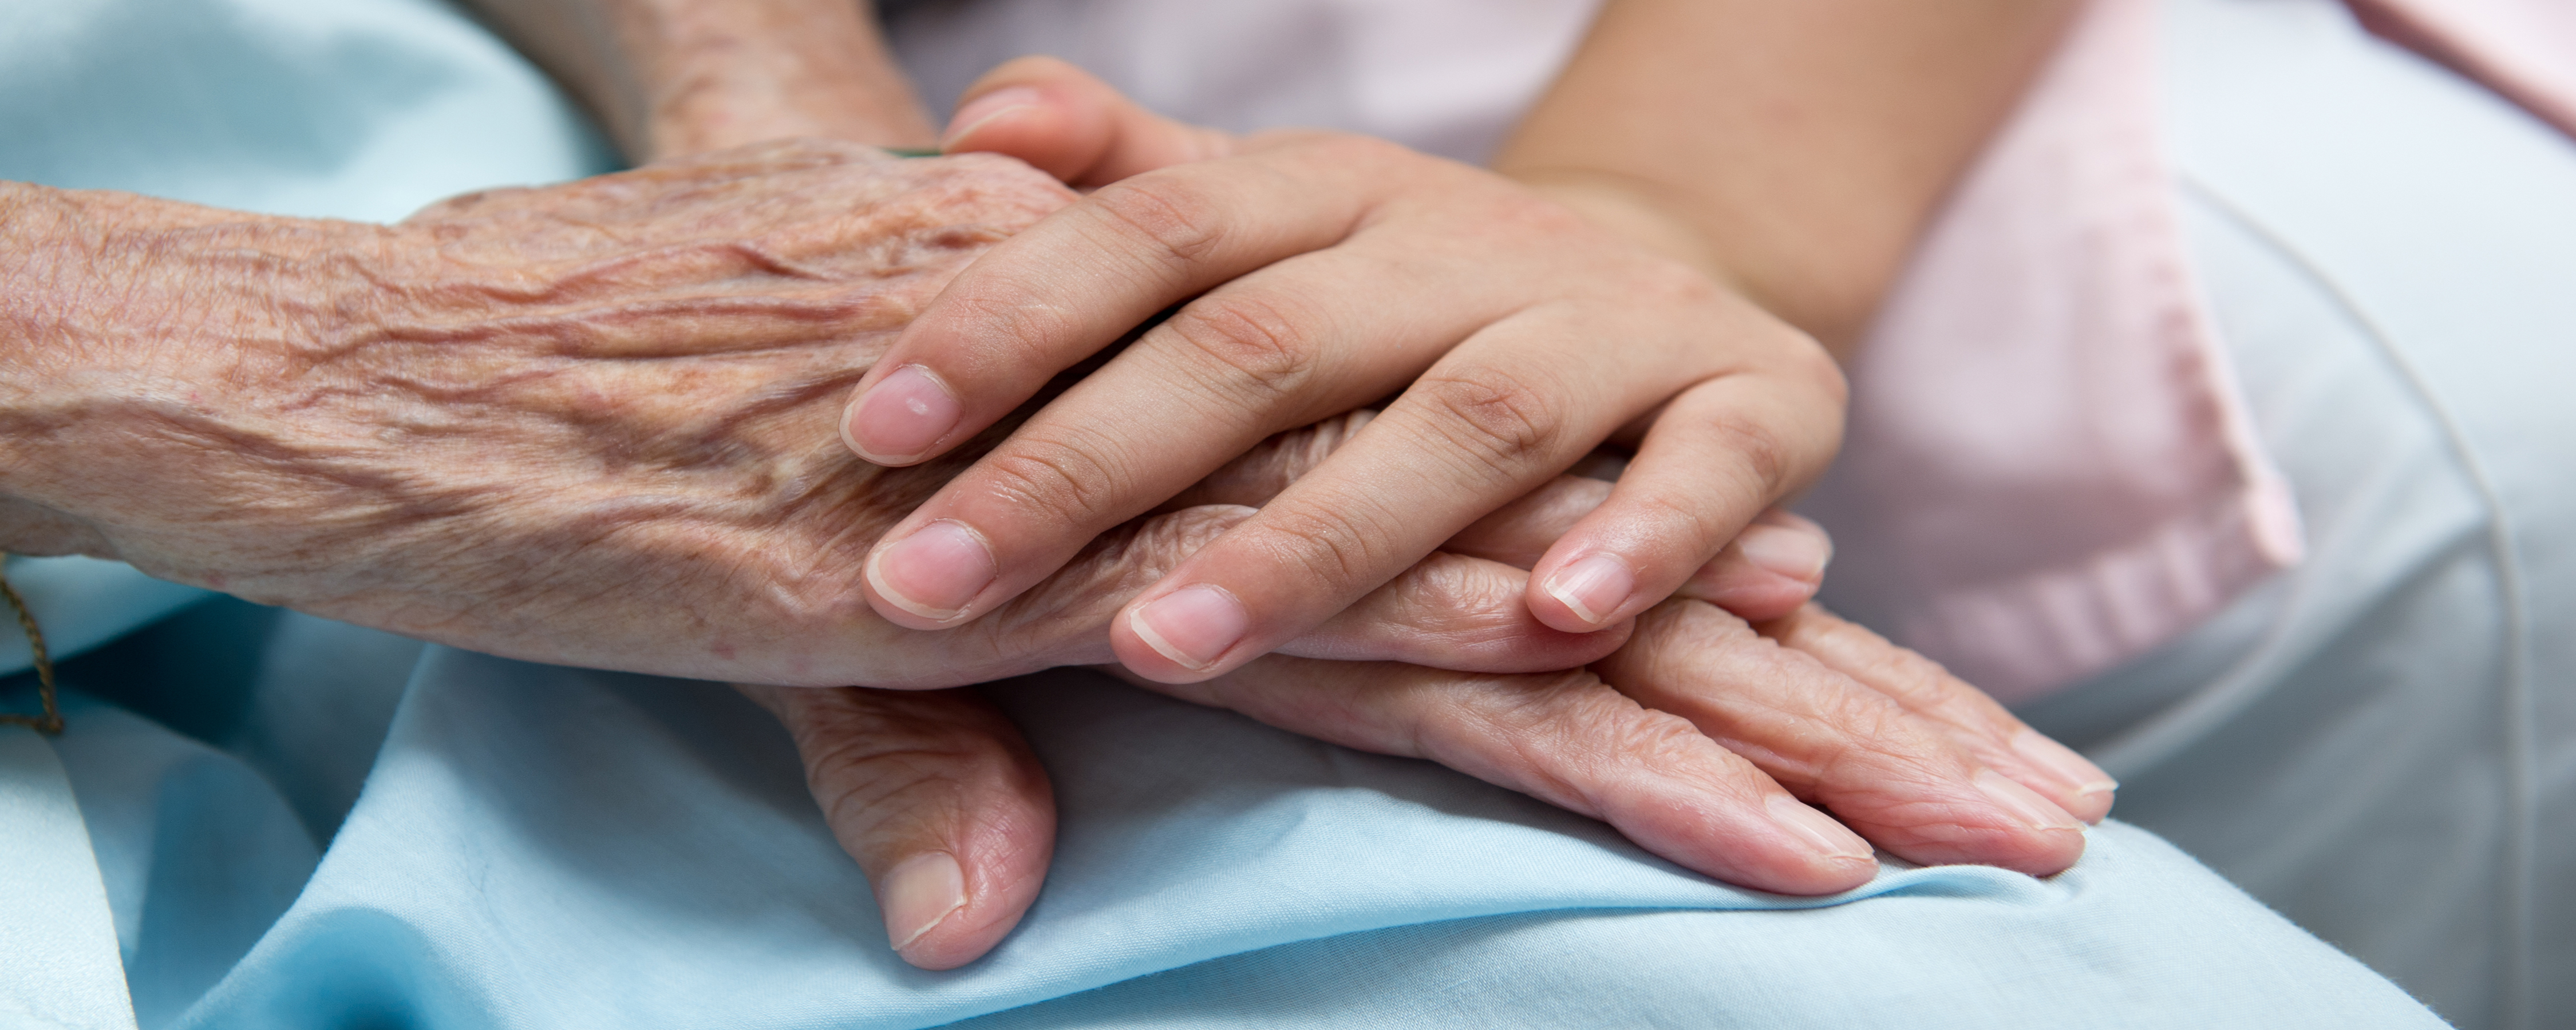 Aging adult and younger person holding hands